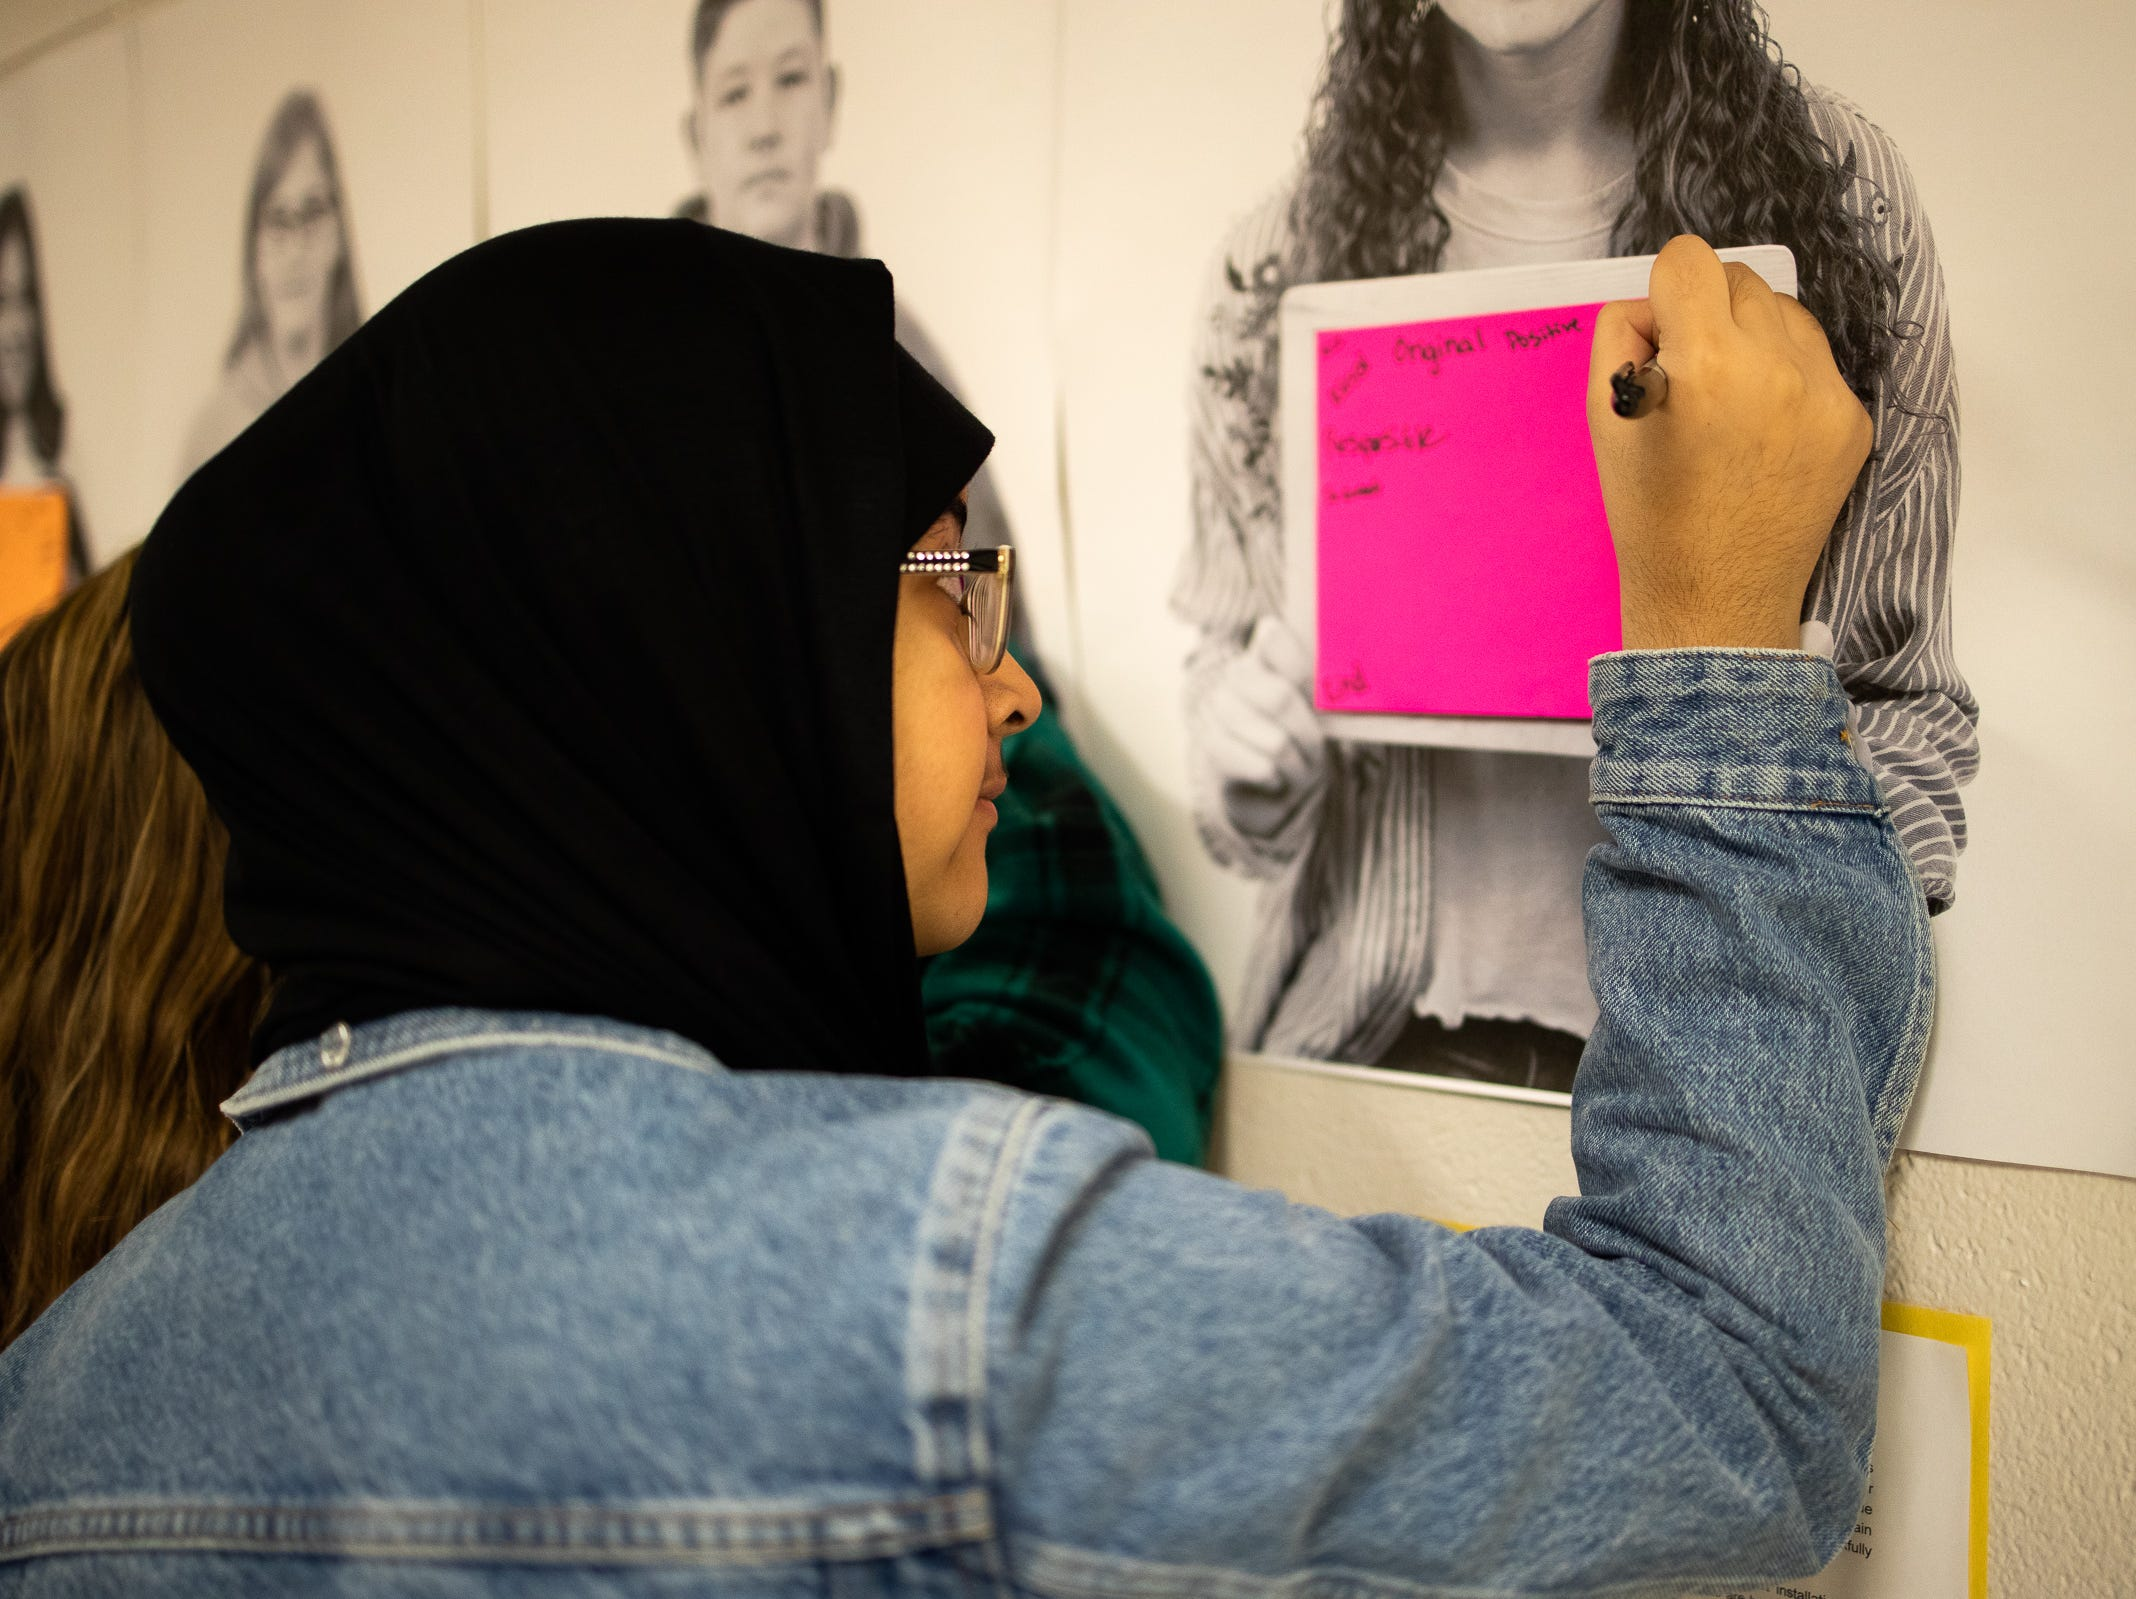 Seba Aldhamen, 16, write words of encouragement on every student's photograph in the hallways of Bath High School.